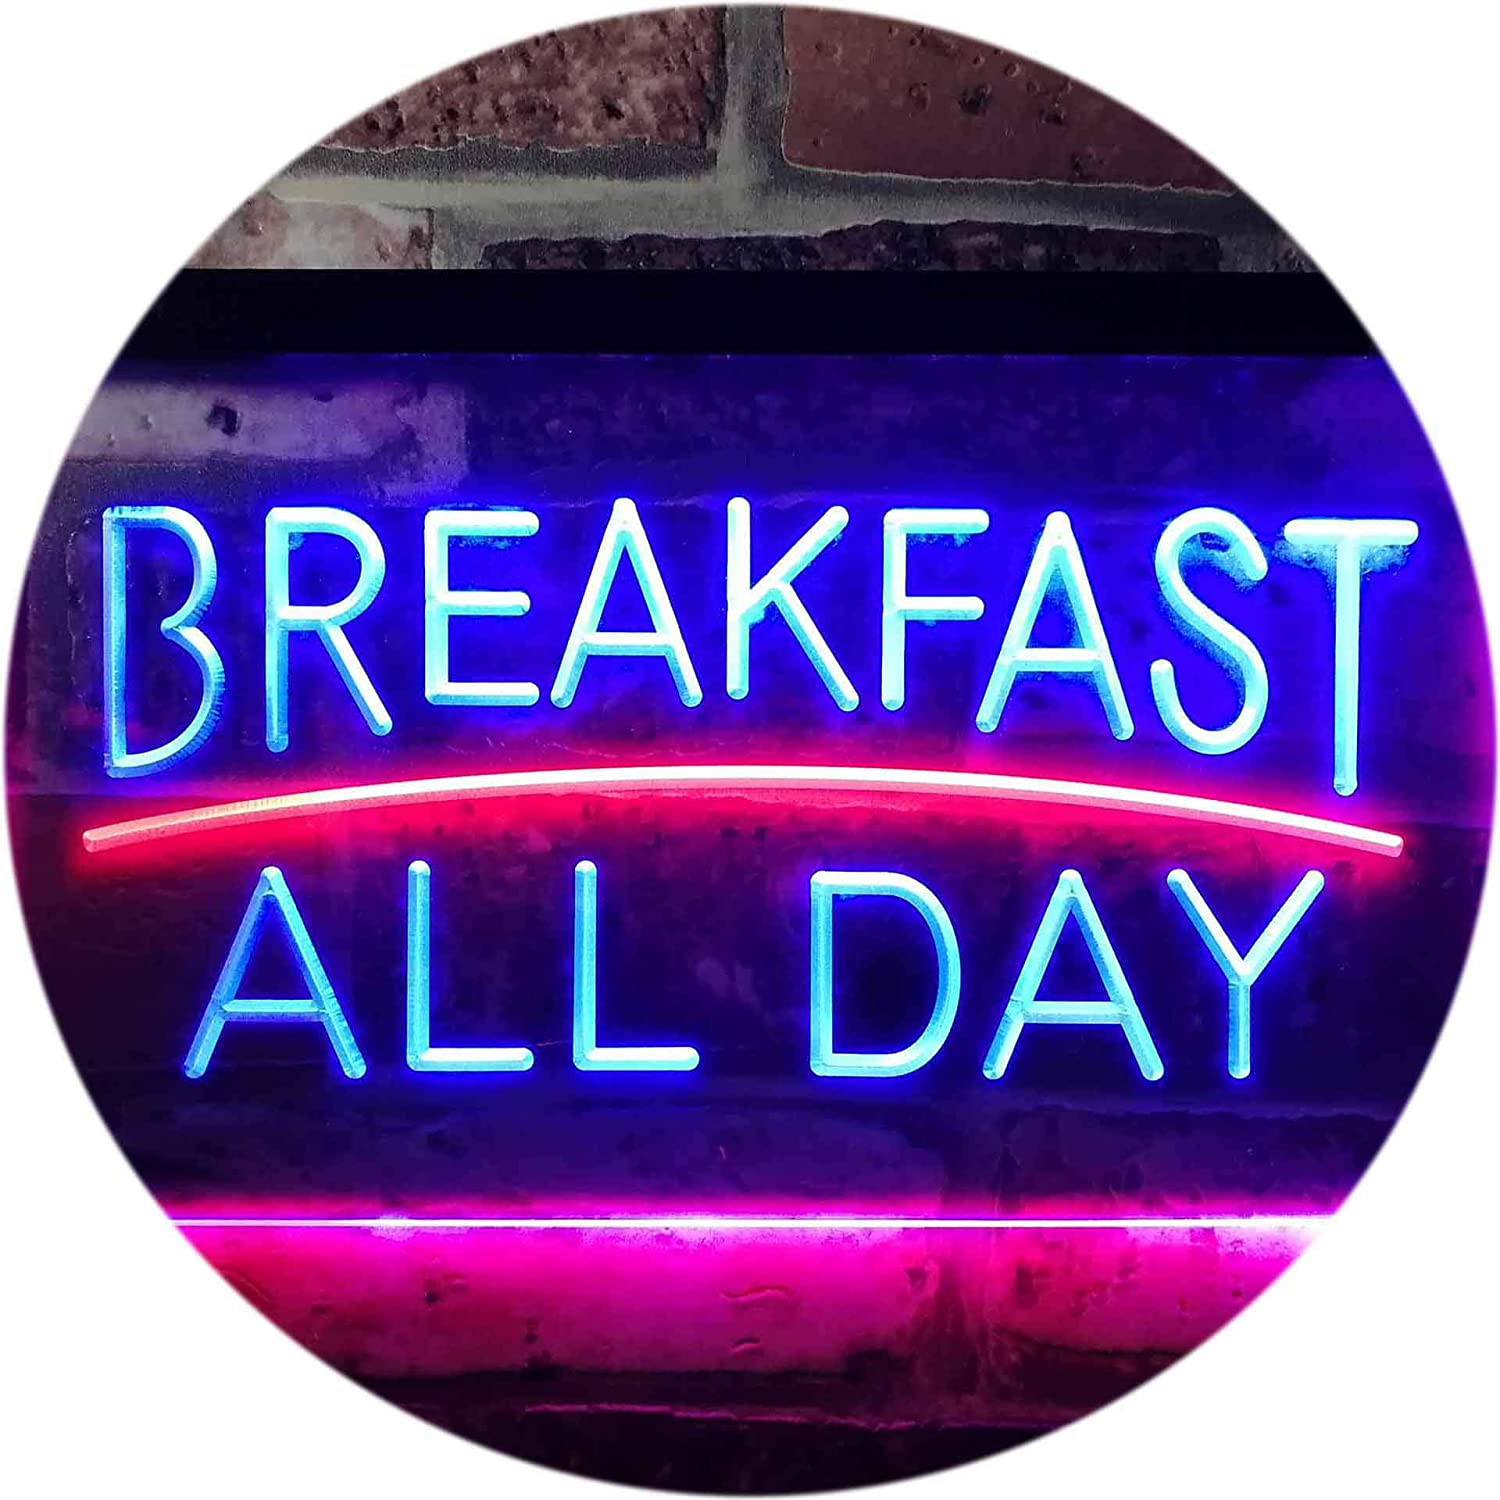 Breakfast All Day Open Restaurant Café Dual Farbe LED Barlicht Neonlicht Lichtwerbung Neon Sign rot & Blau 400mm x 300mm st6s43-i0311-rb